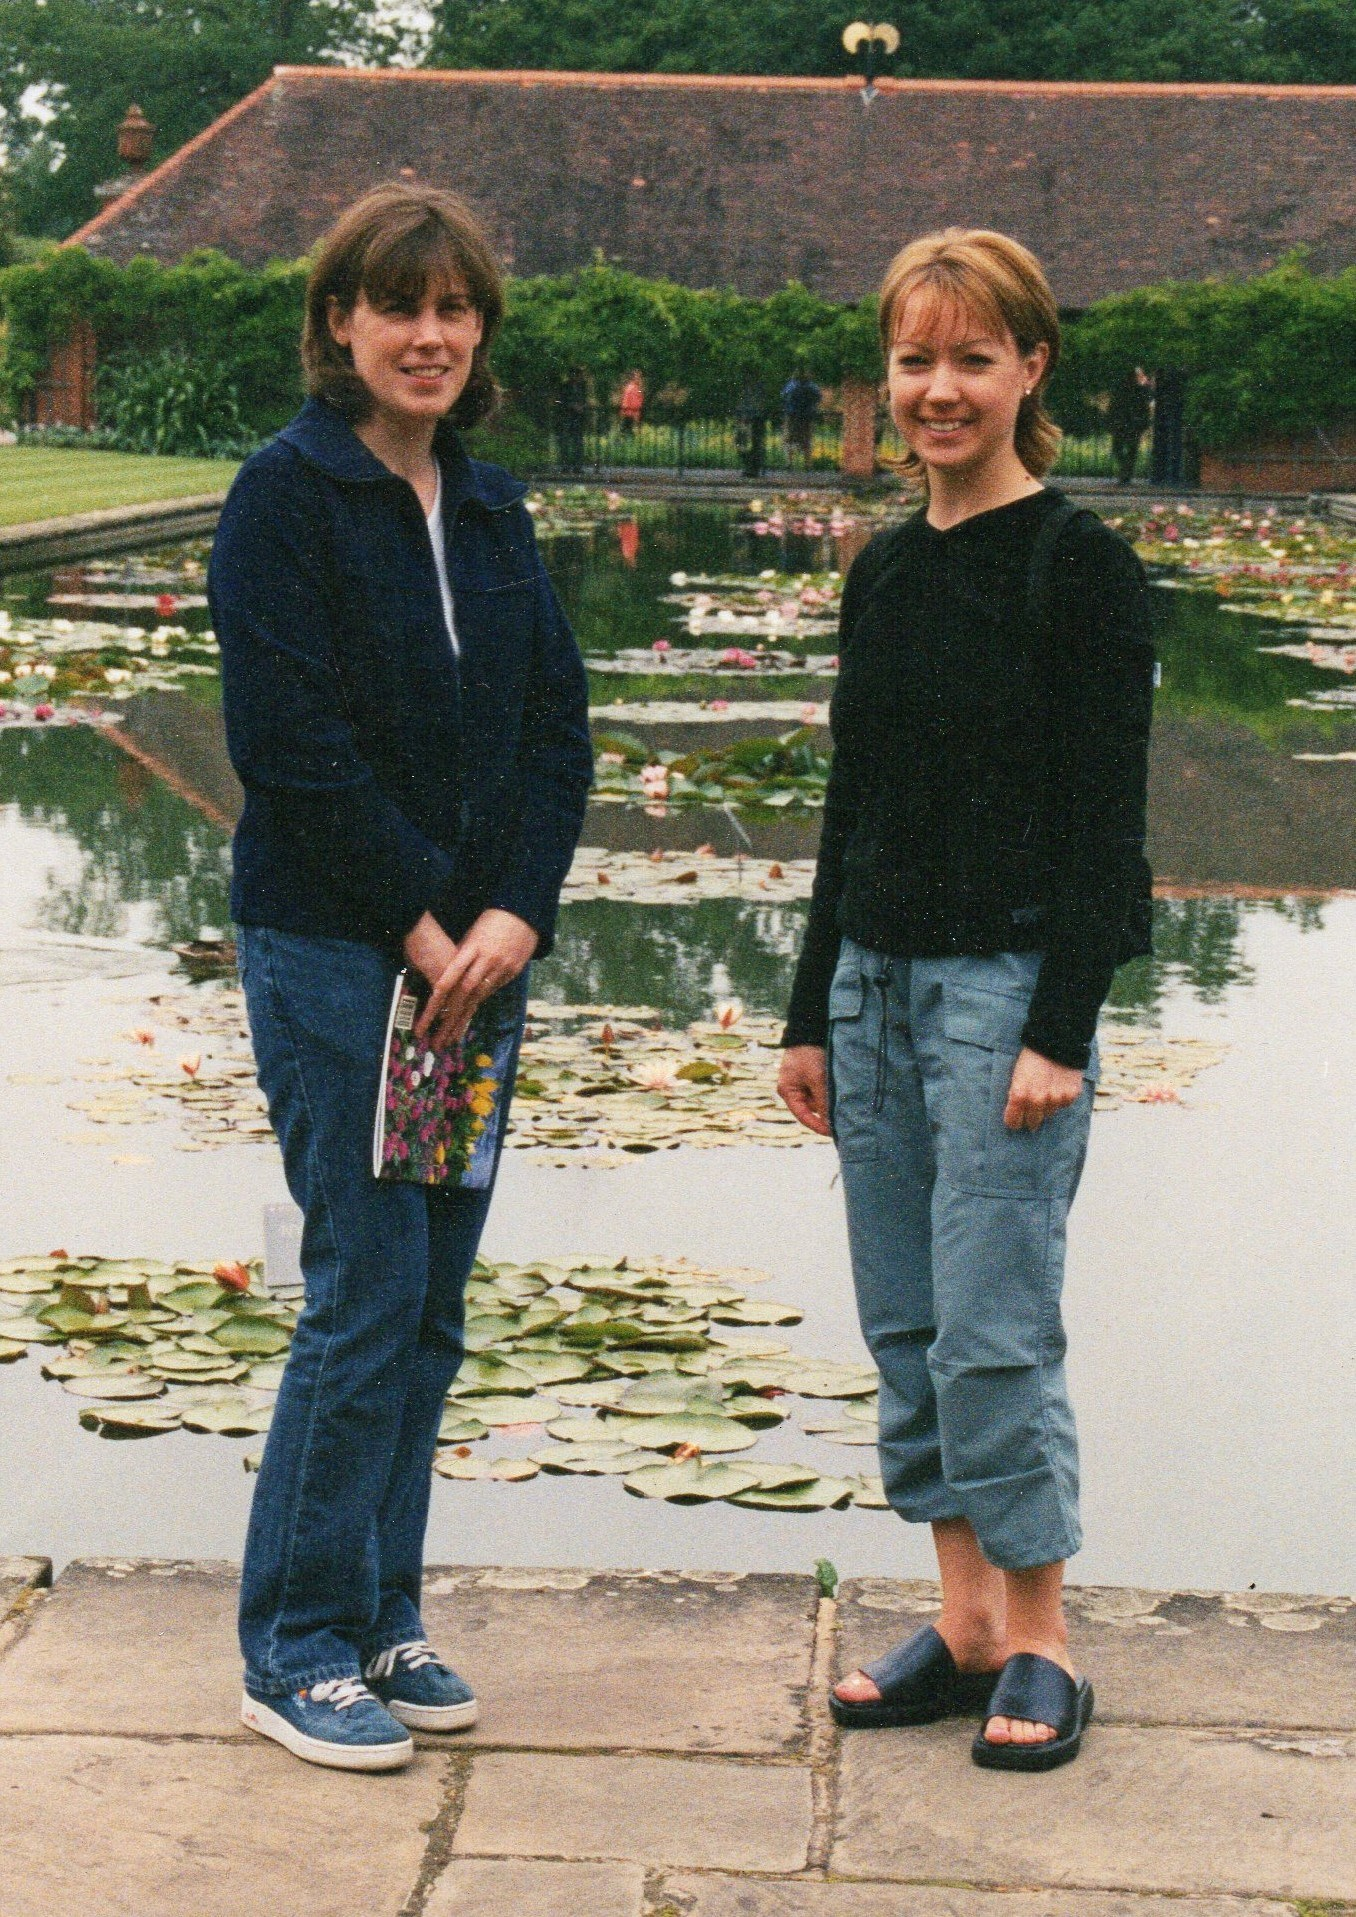 One of many happy memories of our annual visits to garden shows – this one at Wisley Gardens